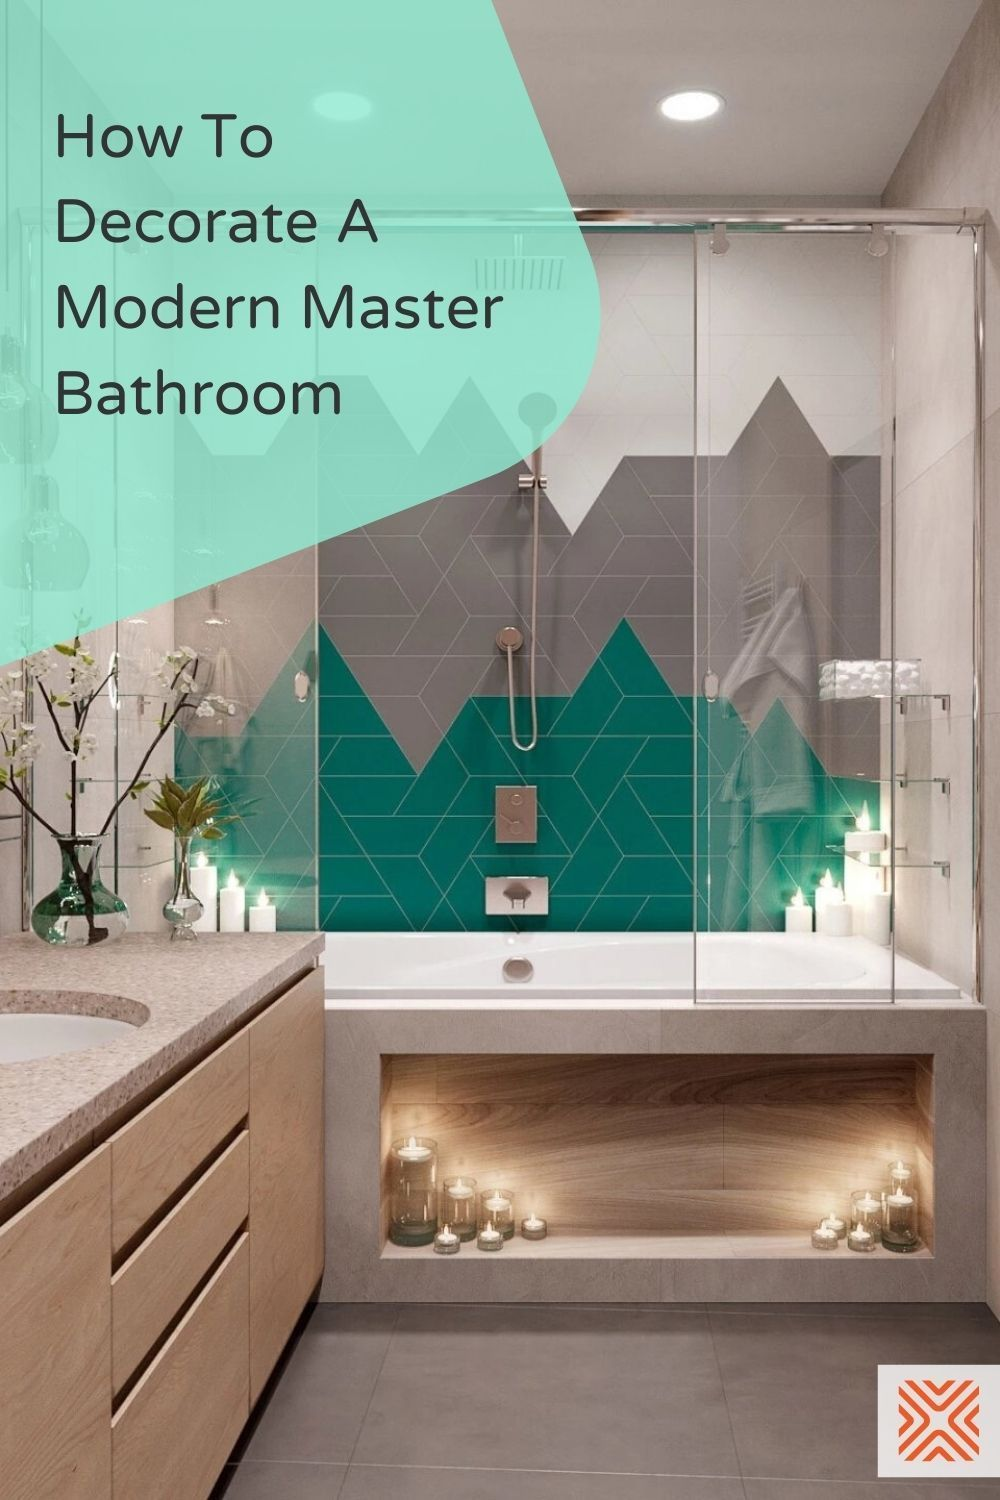 When it comes to decorating a master bathroom, there is a lot you can do. Since modern bathroom design tends to be minimalistic and sleek, you don't want to go overboard with decorations. Here are 10 decorating ideas that will ensure you keep that modern feel in your master bathroom.